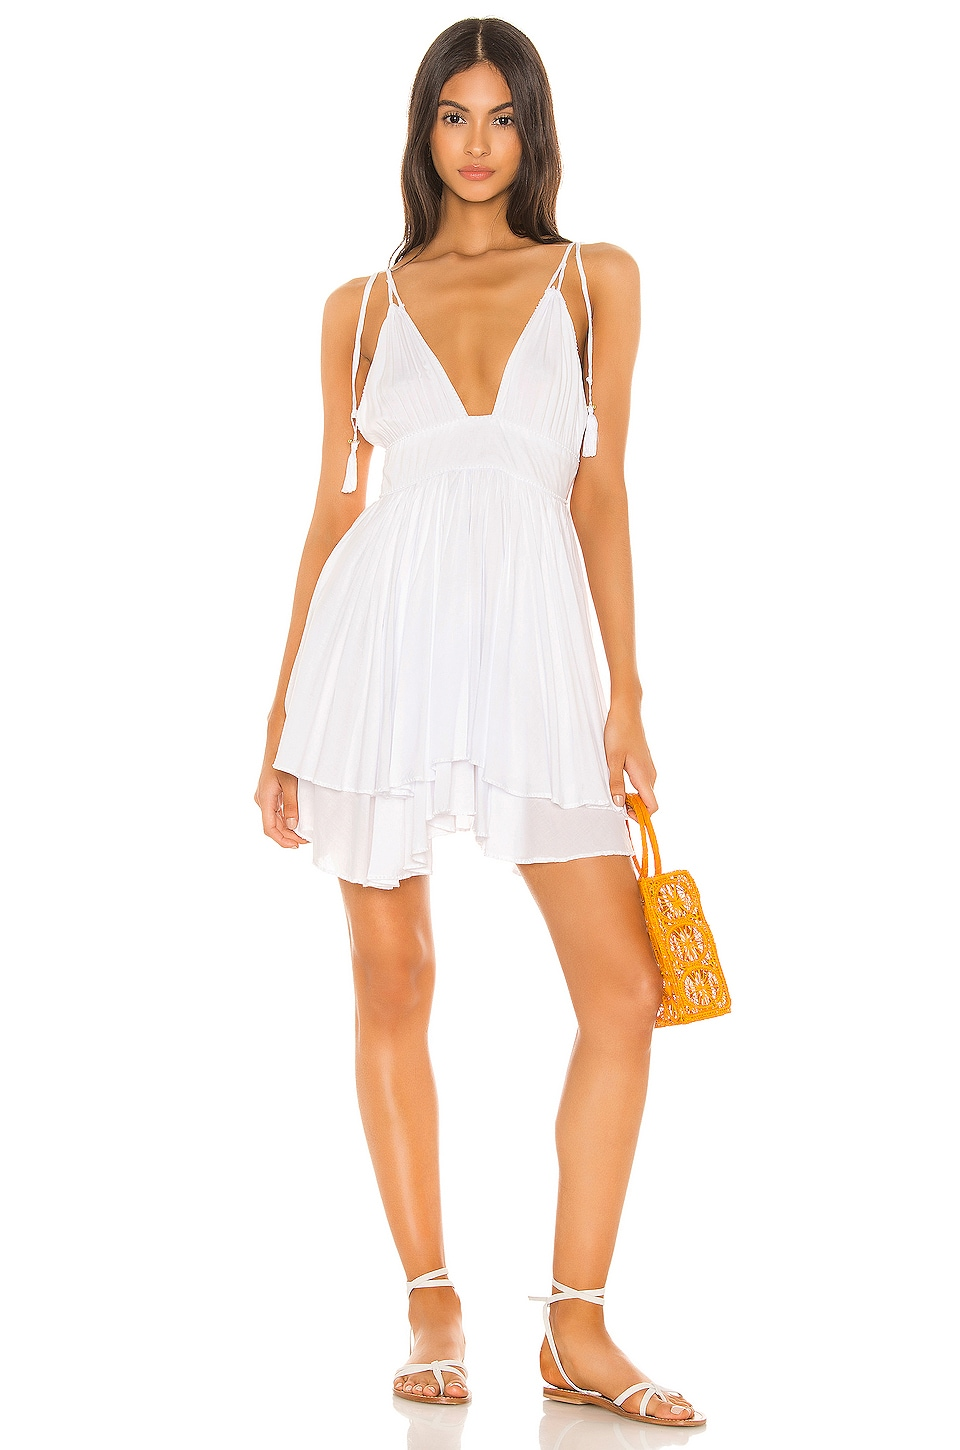 Tiare Hawaii Oui Short Dress in White